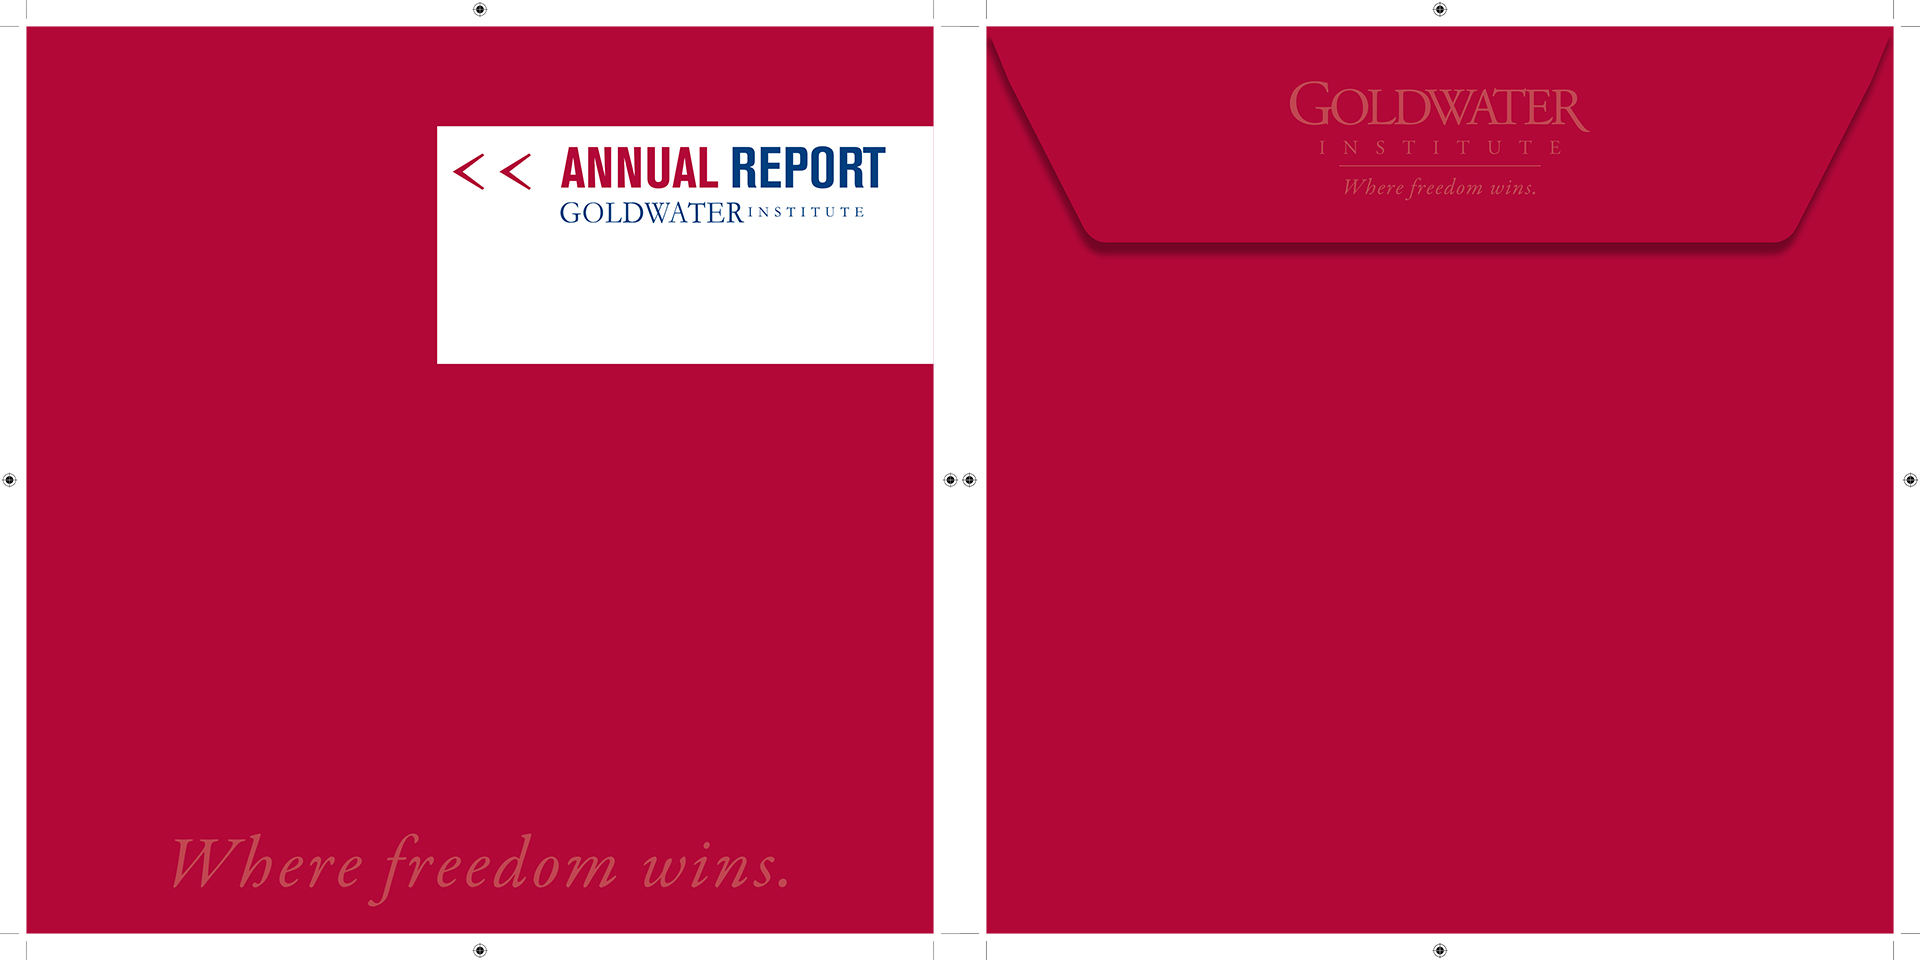 Goldwater Institute Custom Envelope Design